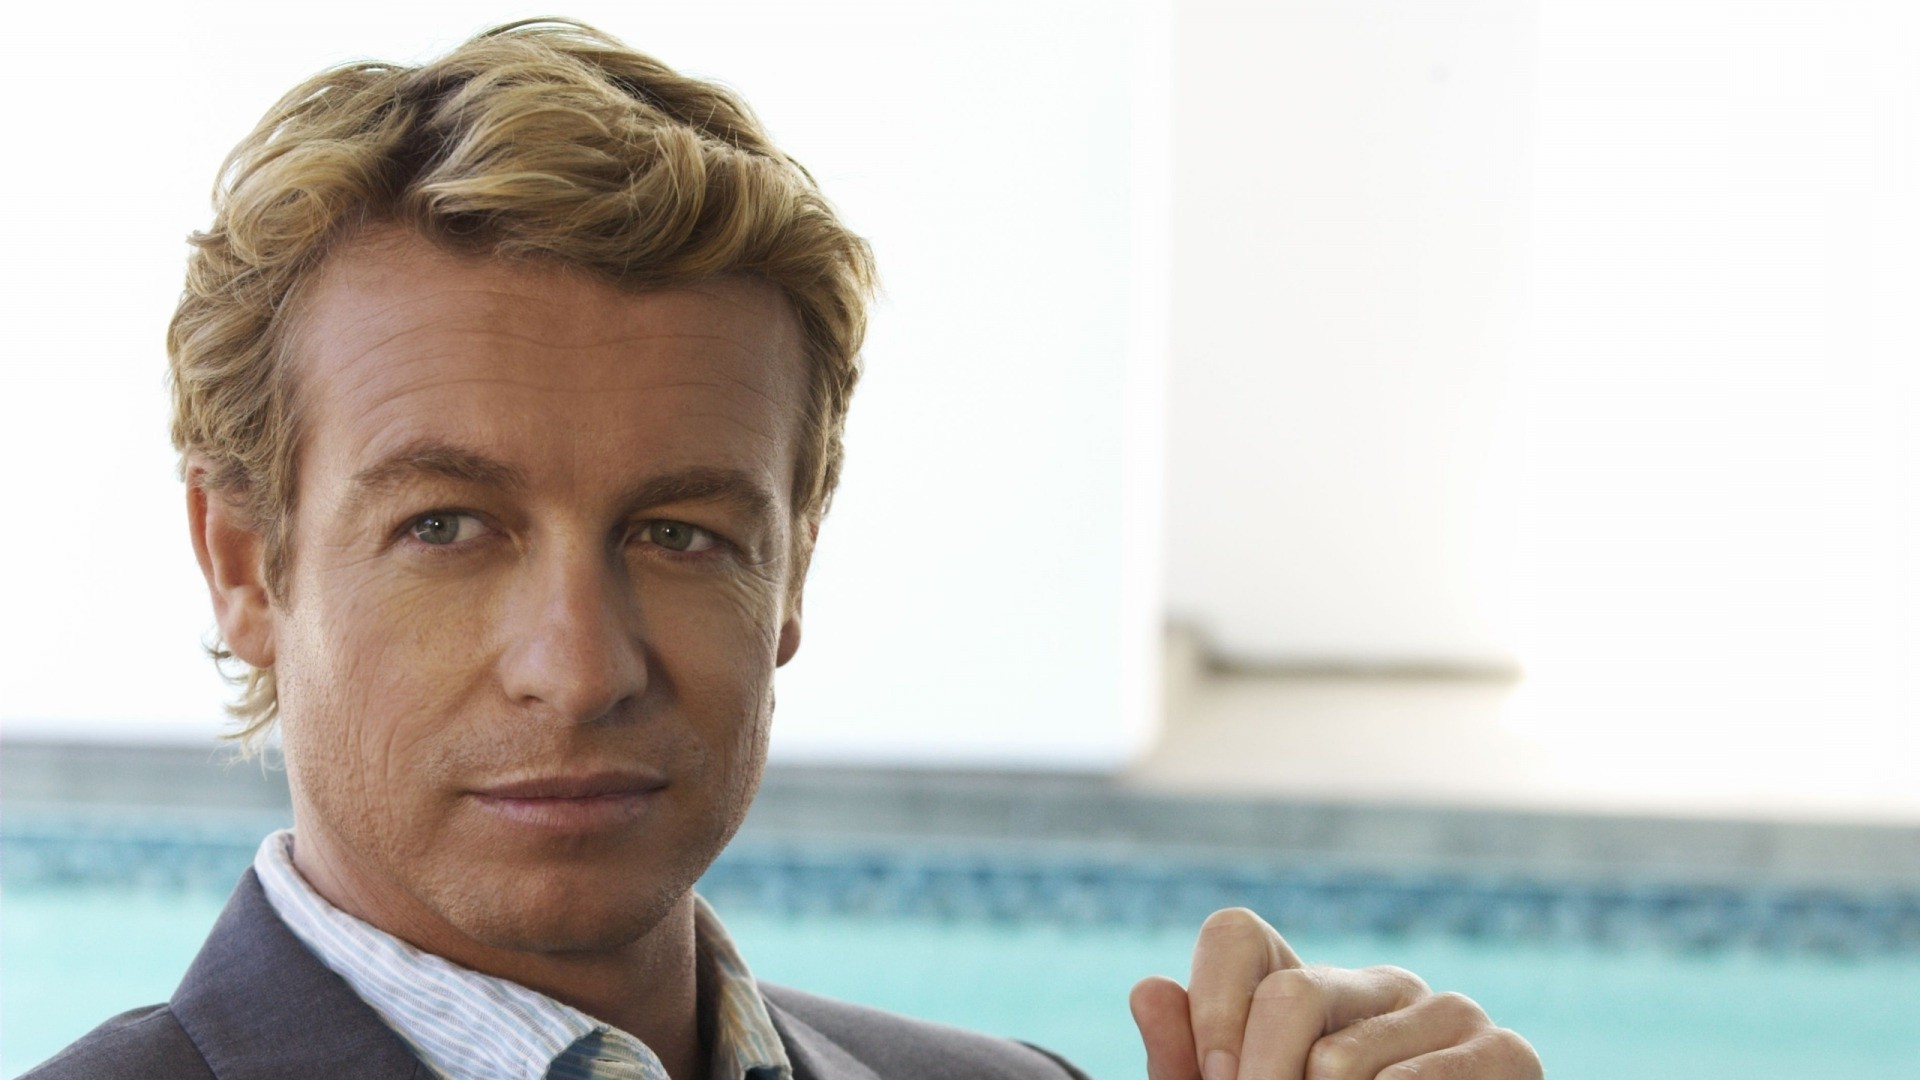 simon baker twittersimon baker 2016, simon baker wife, simon baker 2017, simon baker gif, simon baker young, simon baker breath, simon baker twitter, simon baker family, simon baker givenchy, simon baker vk, simon baker facebook, simon baker daughter, simon baker gif tumblr, simon baker height, simon baker film, simon baker wiki, simon baker gentlemen only, simon baker givenchy gentlemen only, simon baker nicholas bishop, simon baker suit